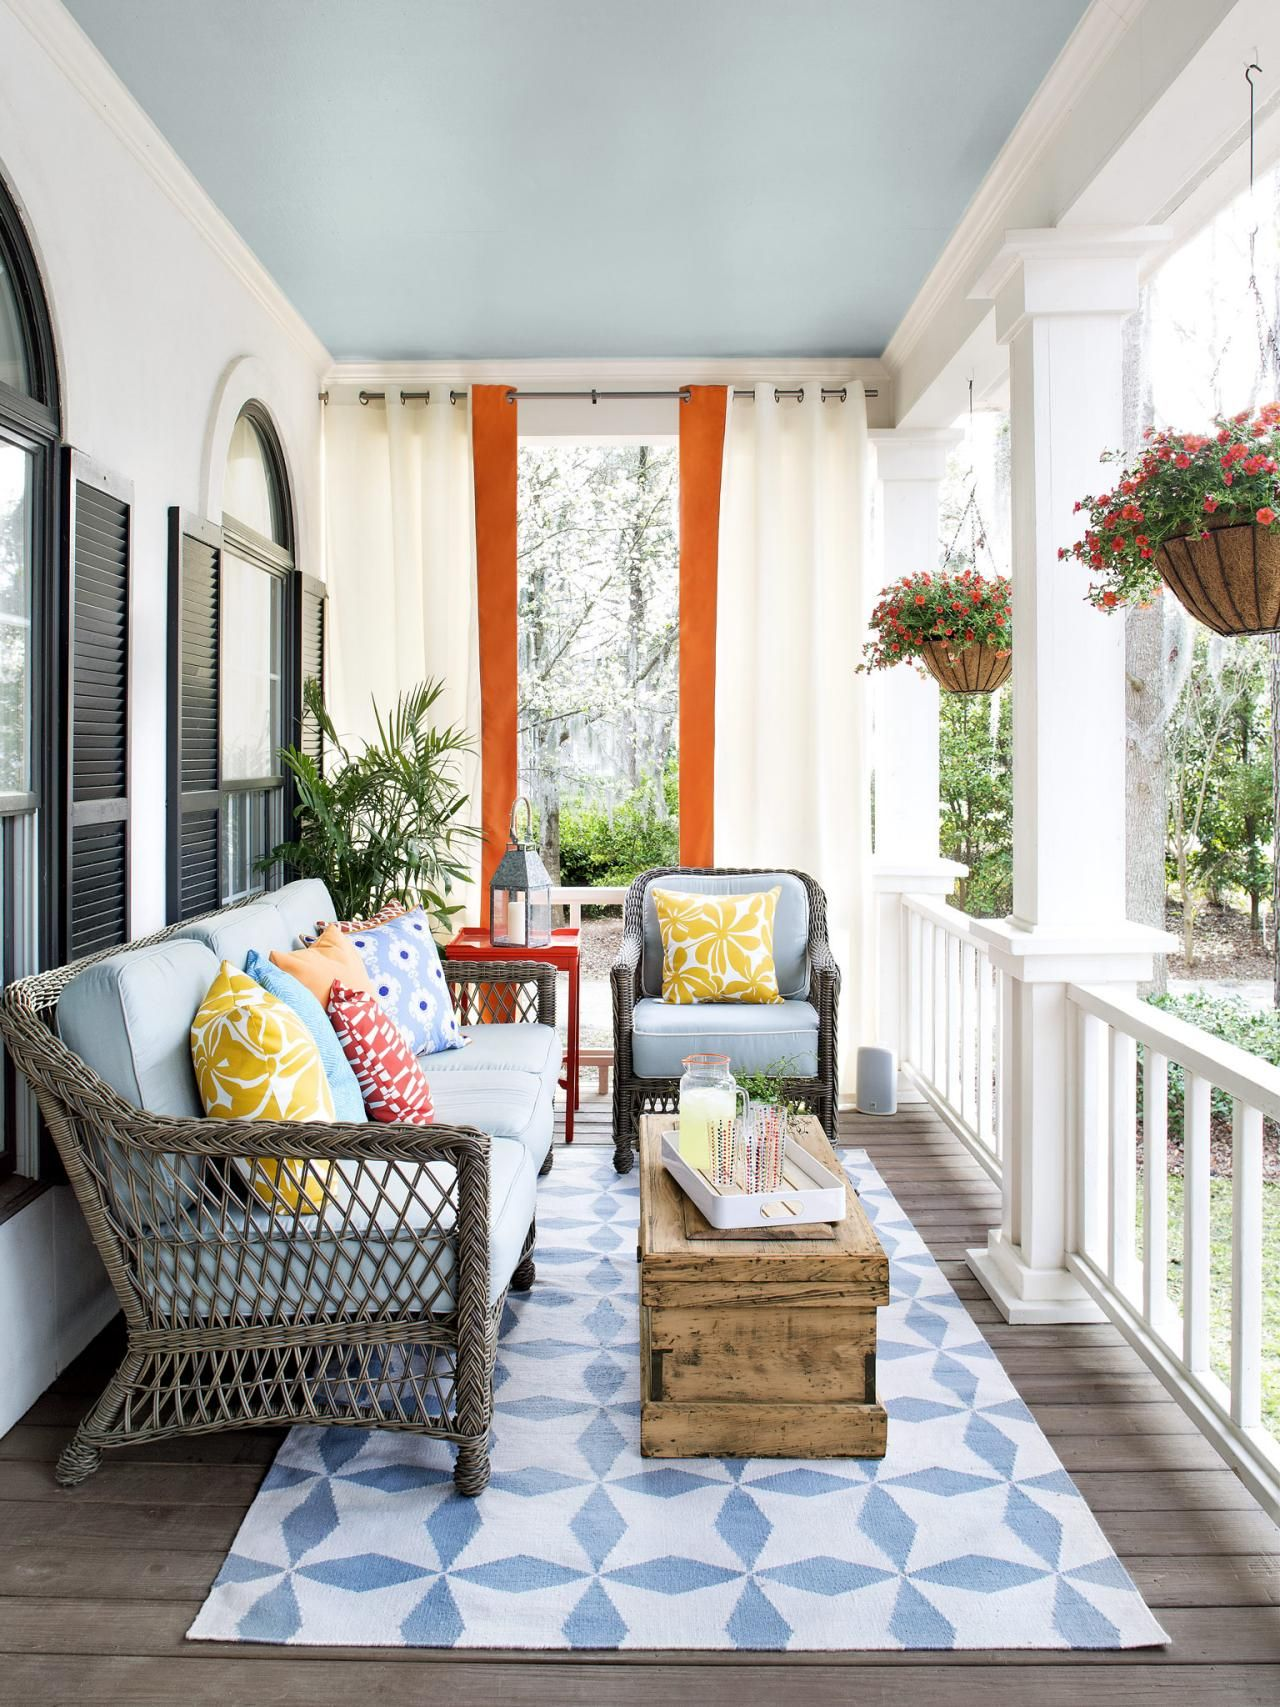 porch design and decorating ideas (with images) | porch